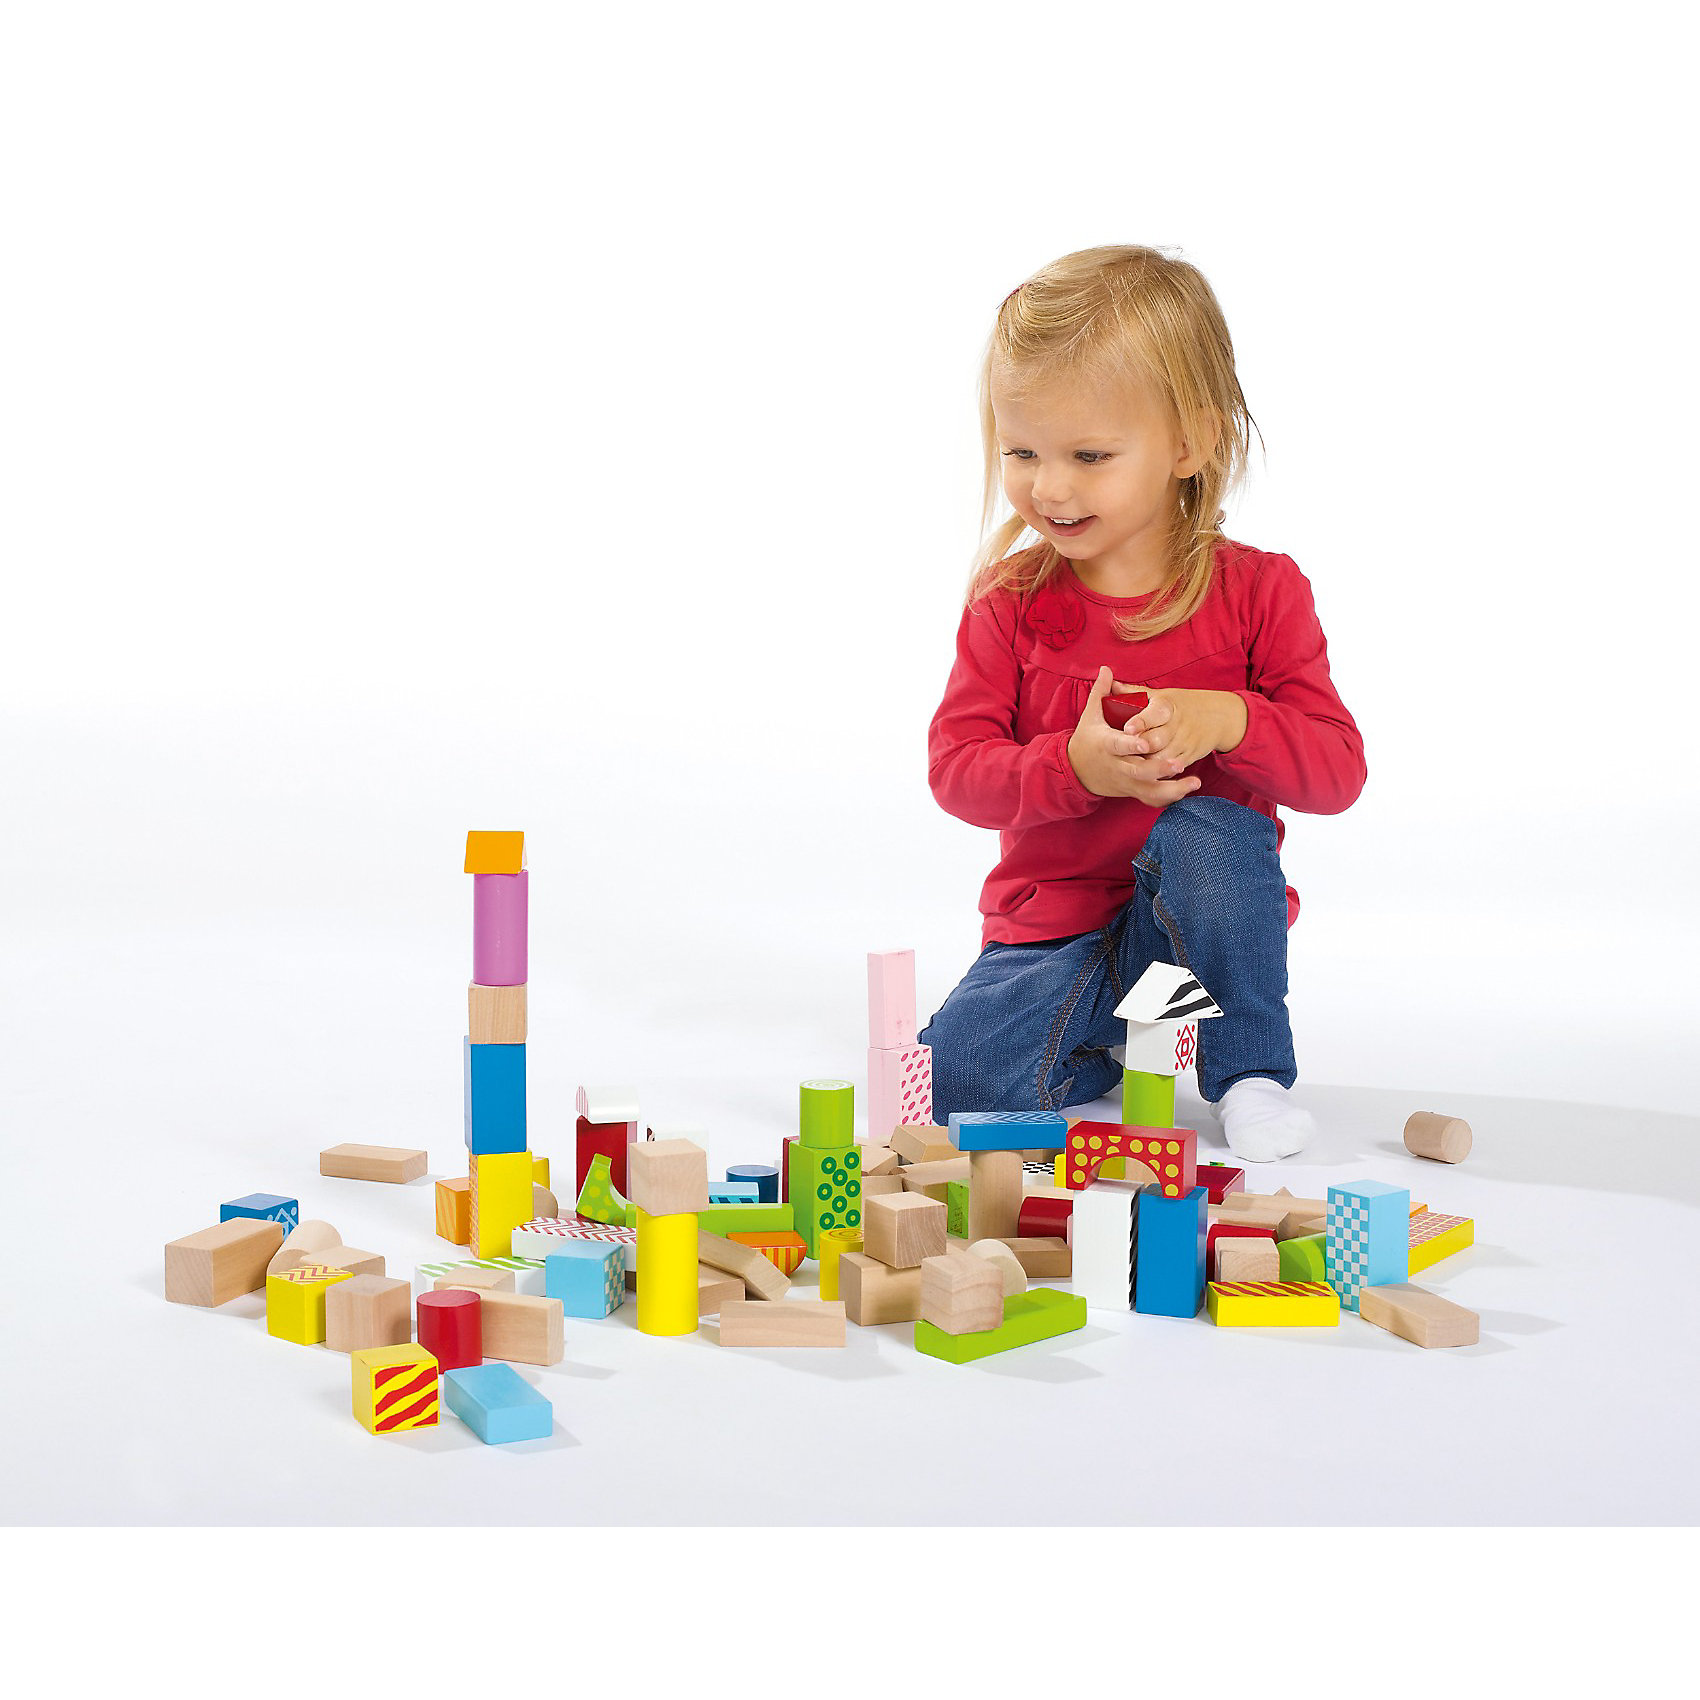 Wooden Building Blocks Colour Eichhorn myToys